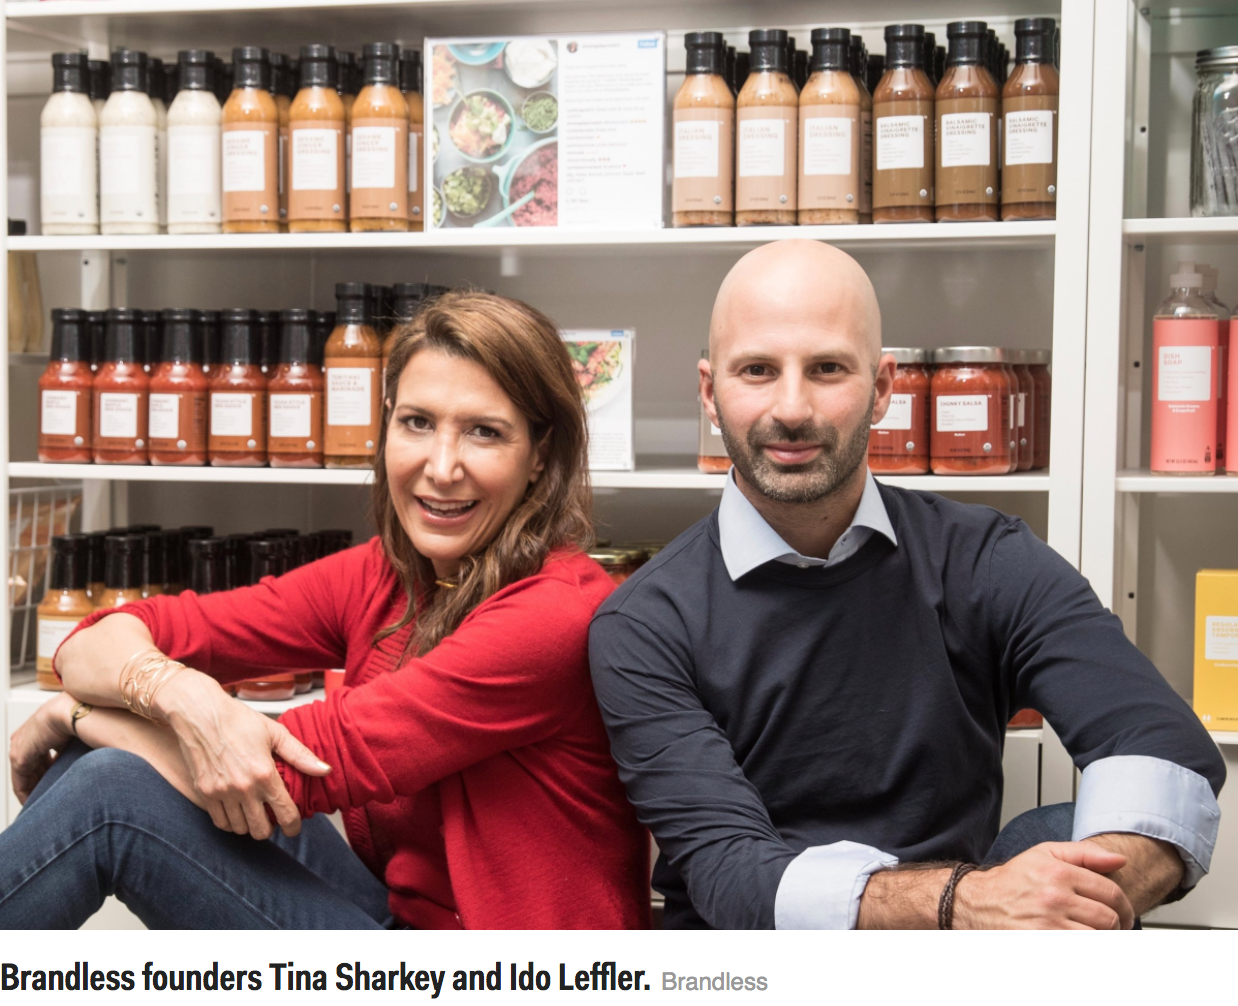 A New Startup –BRANDLESS™, an Online eCommerce Platform for Everything You Want to Buy for Just for $3 Raised $50 Million in New Funding Round